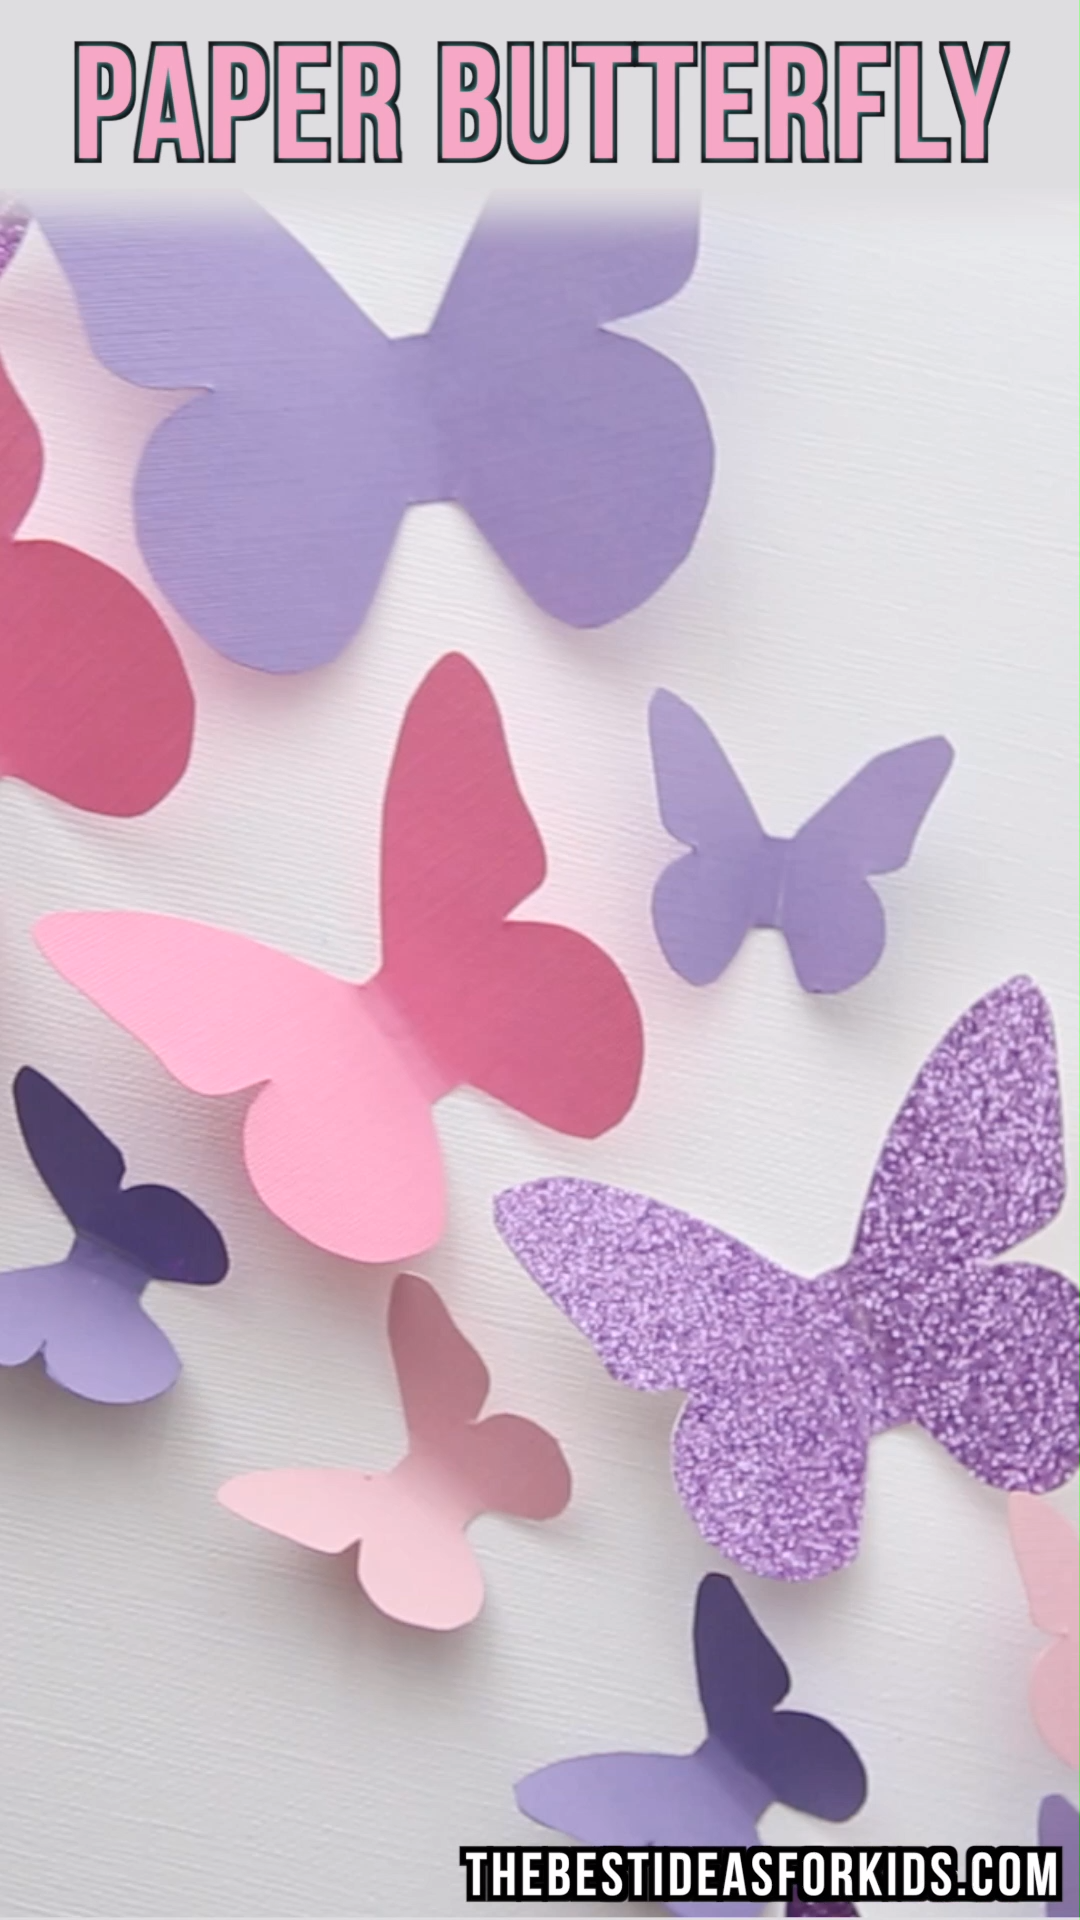 PAPER BUTTERFLY -   20 diy projects Videos paper